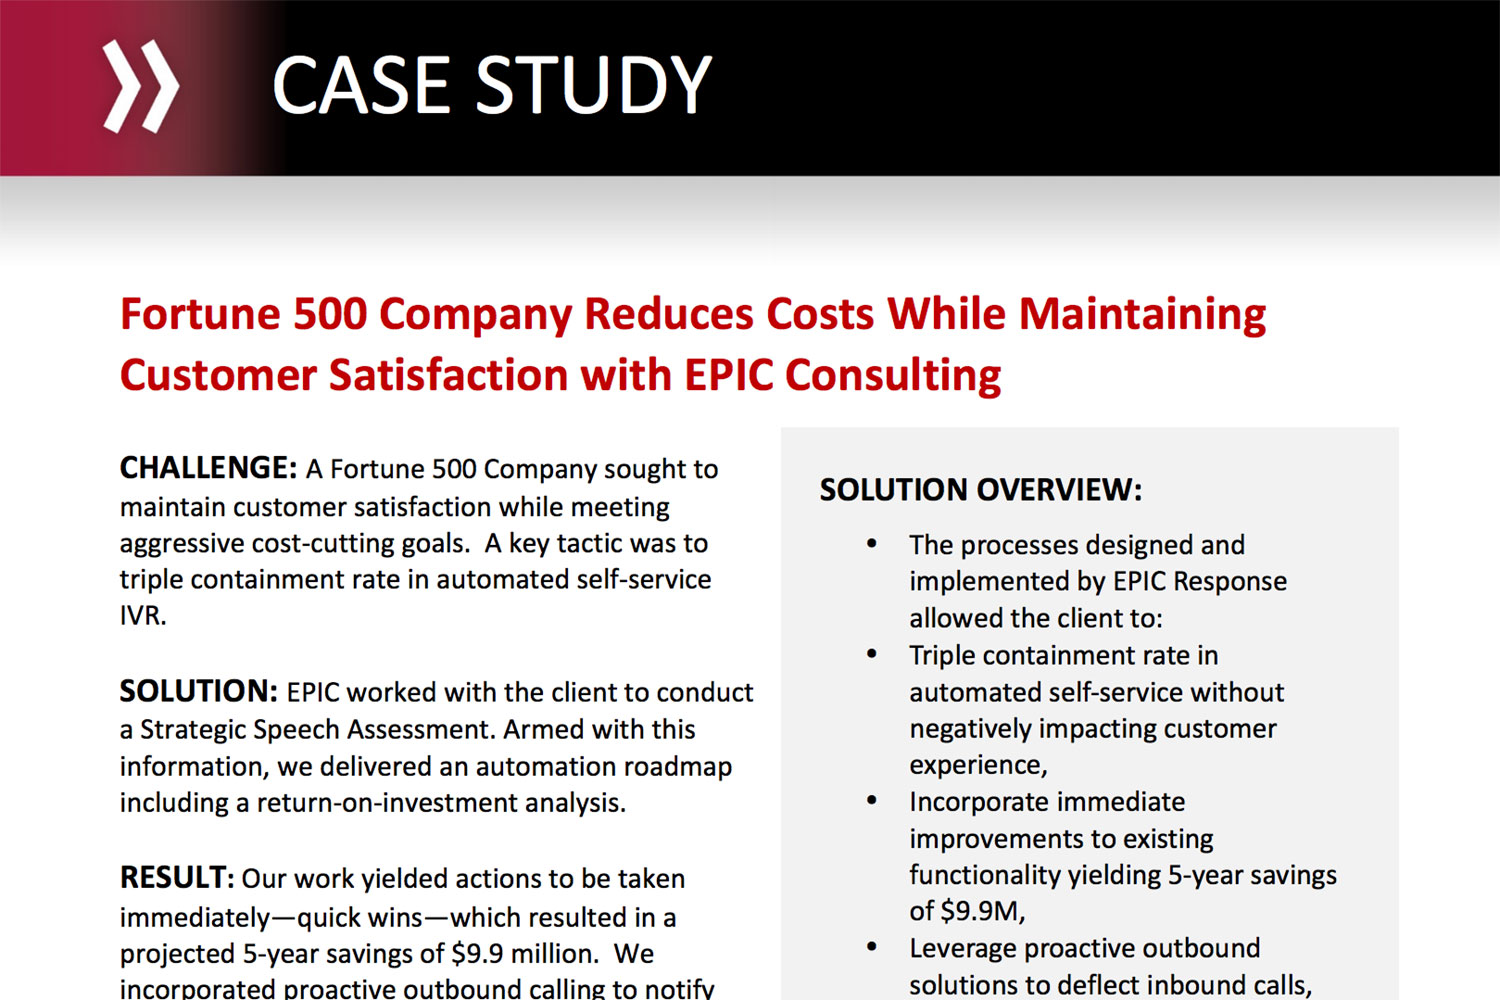 Fortune 500 Company Reduces Costs While Maintaining Customer Satisfaction with EPIC Consulting